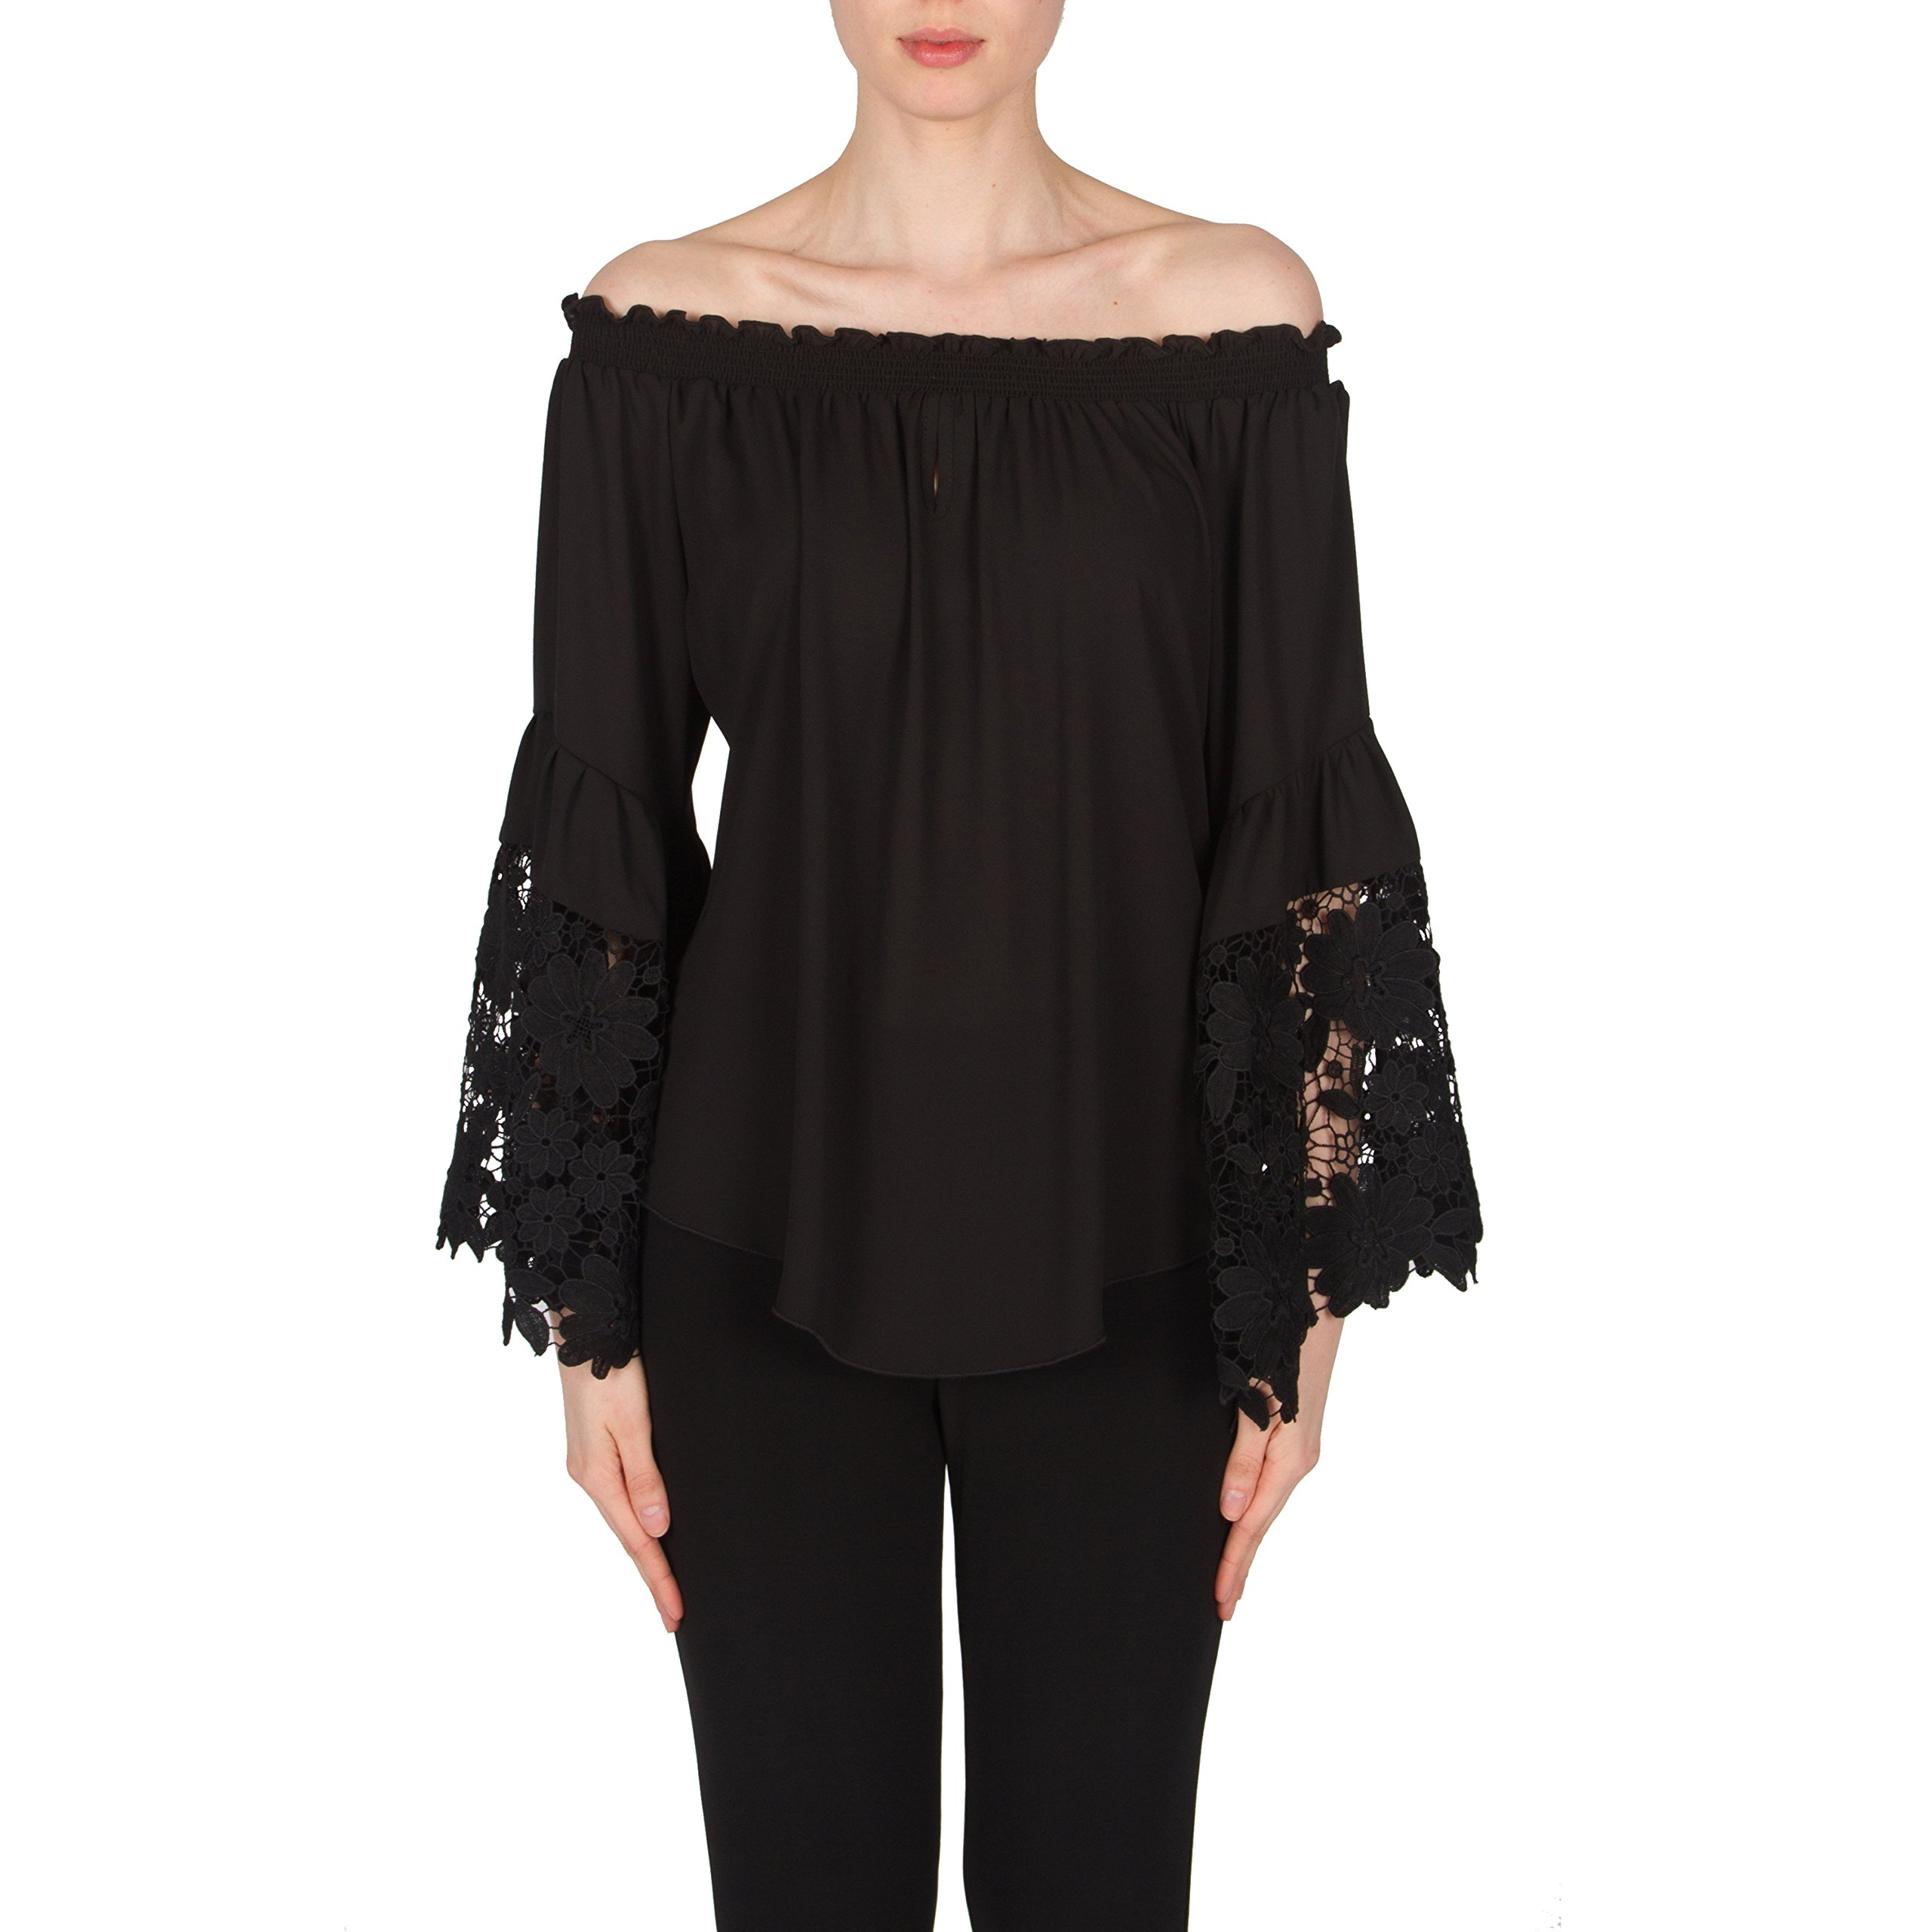 Joseph Ribkoff Black On/Off Shoulder Lace Bell Sleeve Top Style 173286 - Size 4 by Joseph Ribkoff